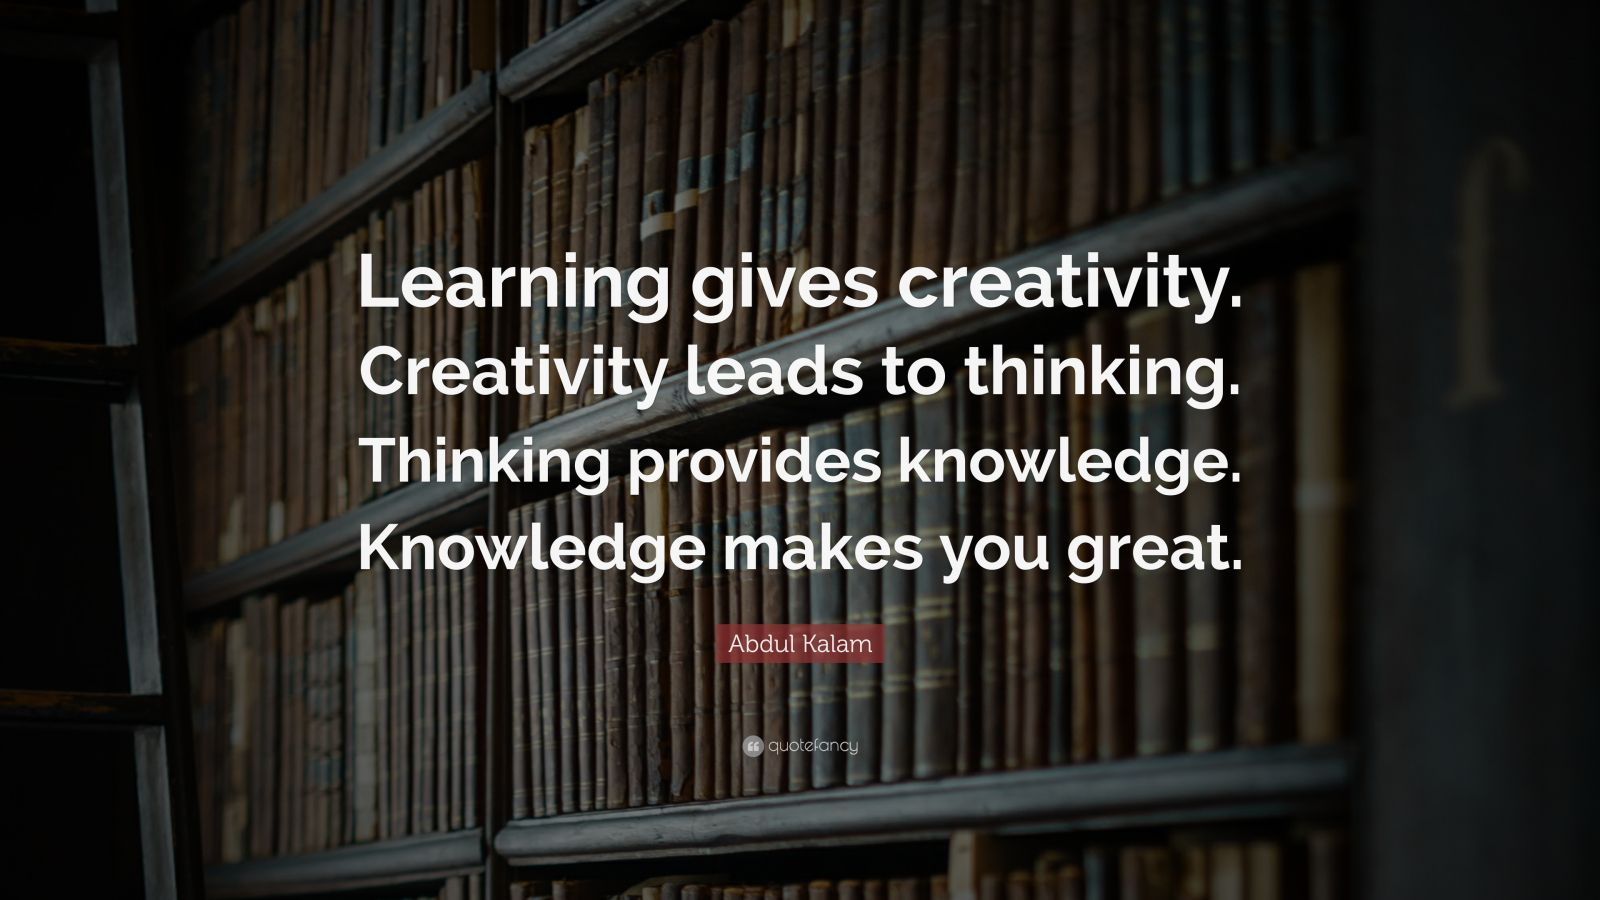 """Abdul Kalam Quote: """"Learning gives creativity. Creativity leads to thinking. Thinking provides knowledge. Knowledge makes you great."""""""